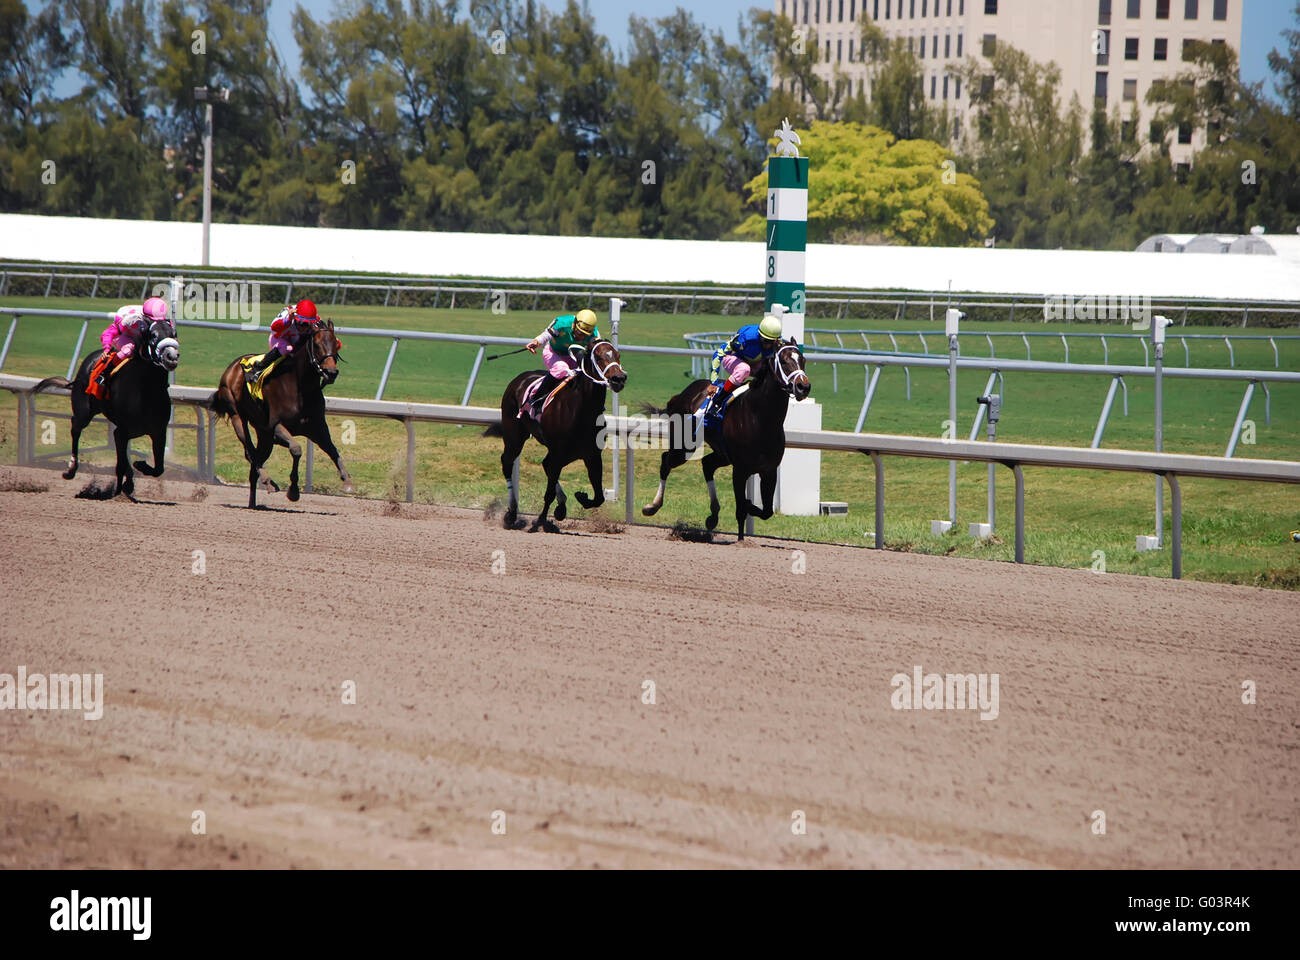 Racehorses Heading to the Wire - Stock Image